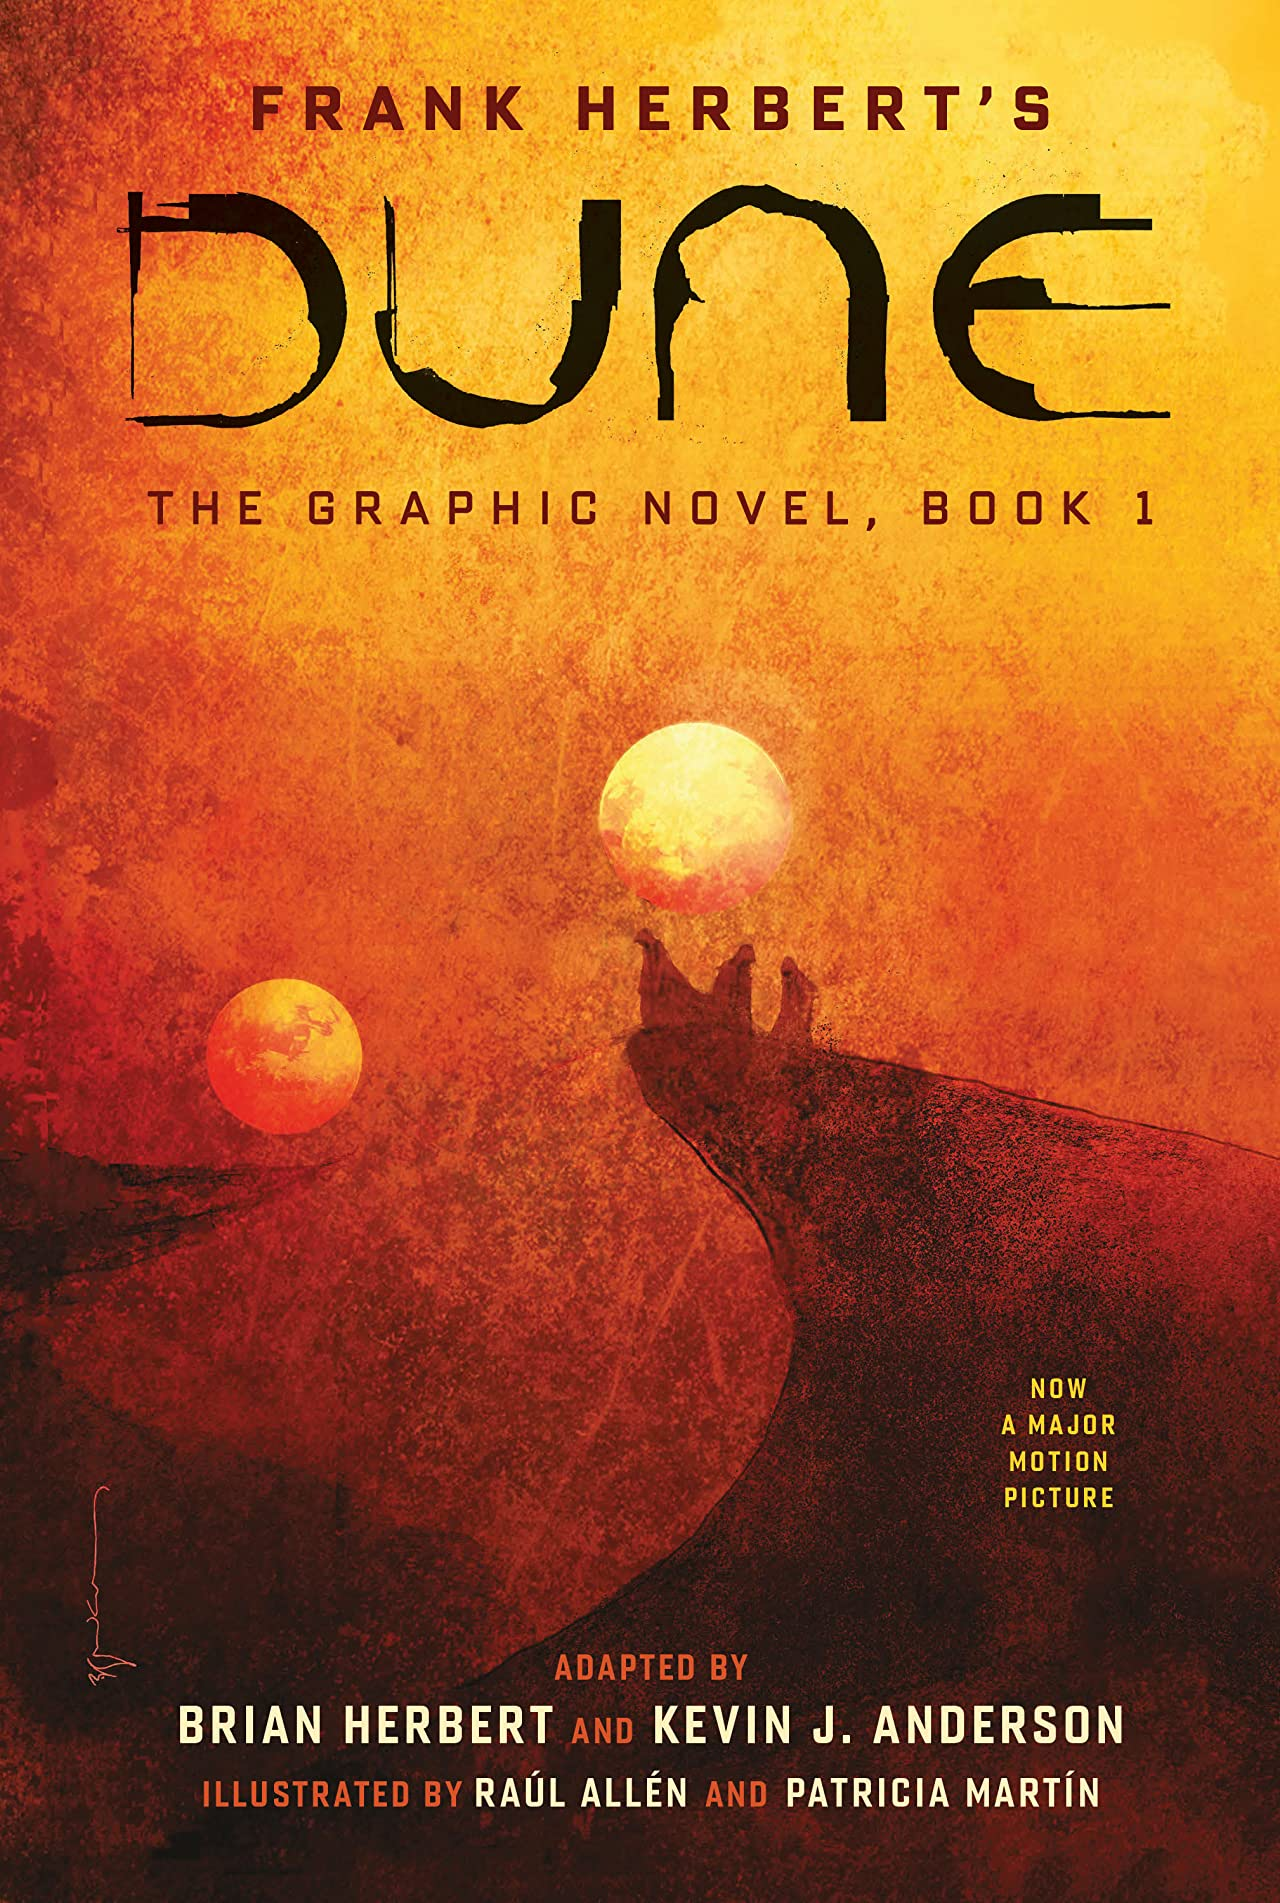 DUNE: The Graphic Novel